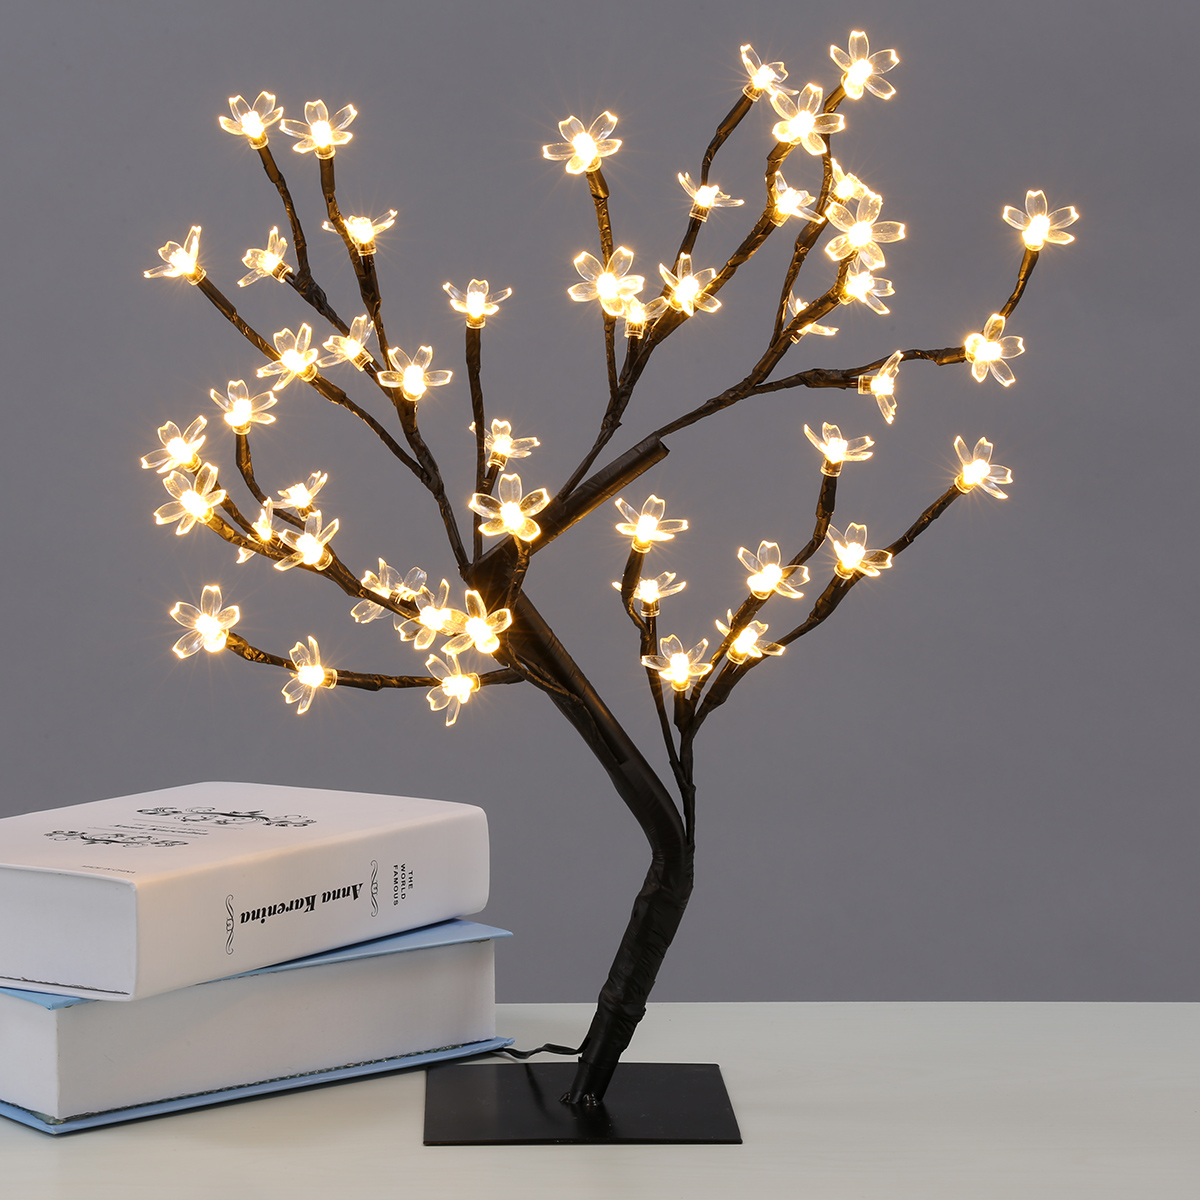 EXCELVAN 45CM LED FLORAL CHERRY BLOSSOM LIGHT CHRISTMAS GARDEN TREE BRANCH DIY DESK LAMP